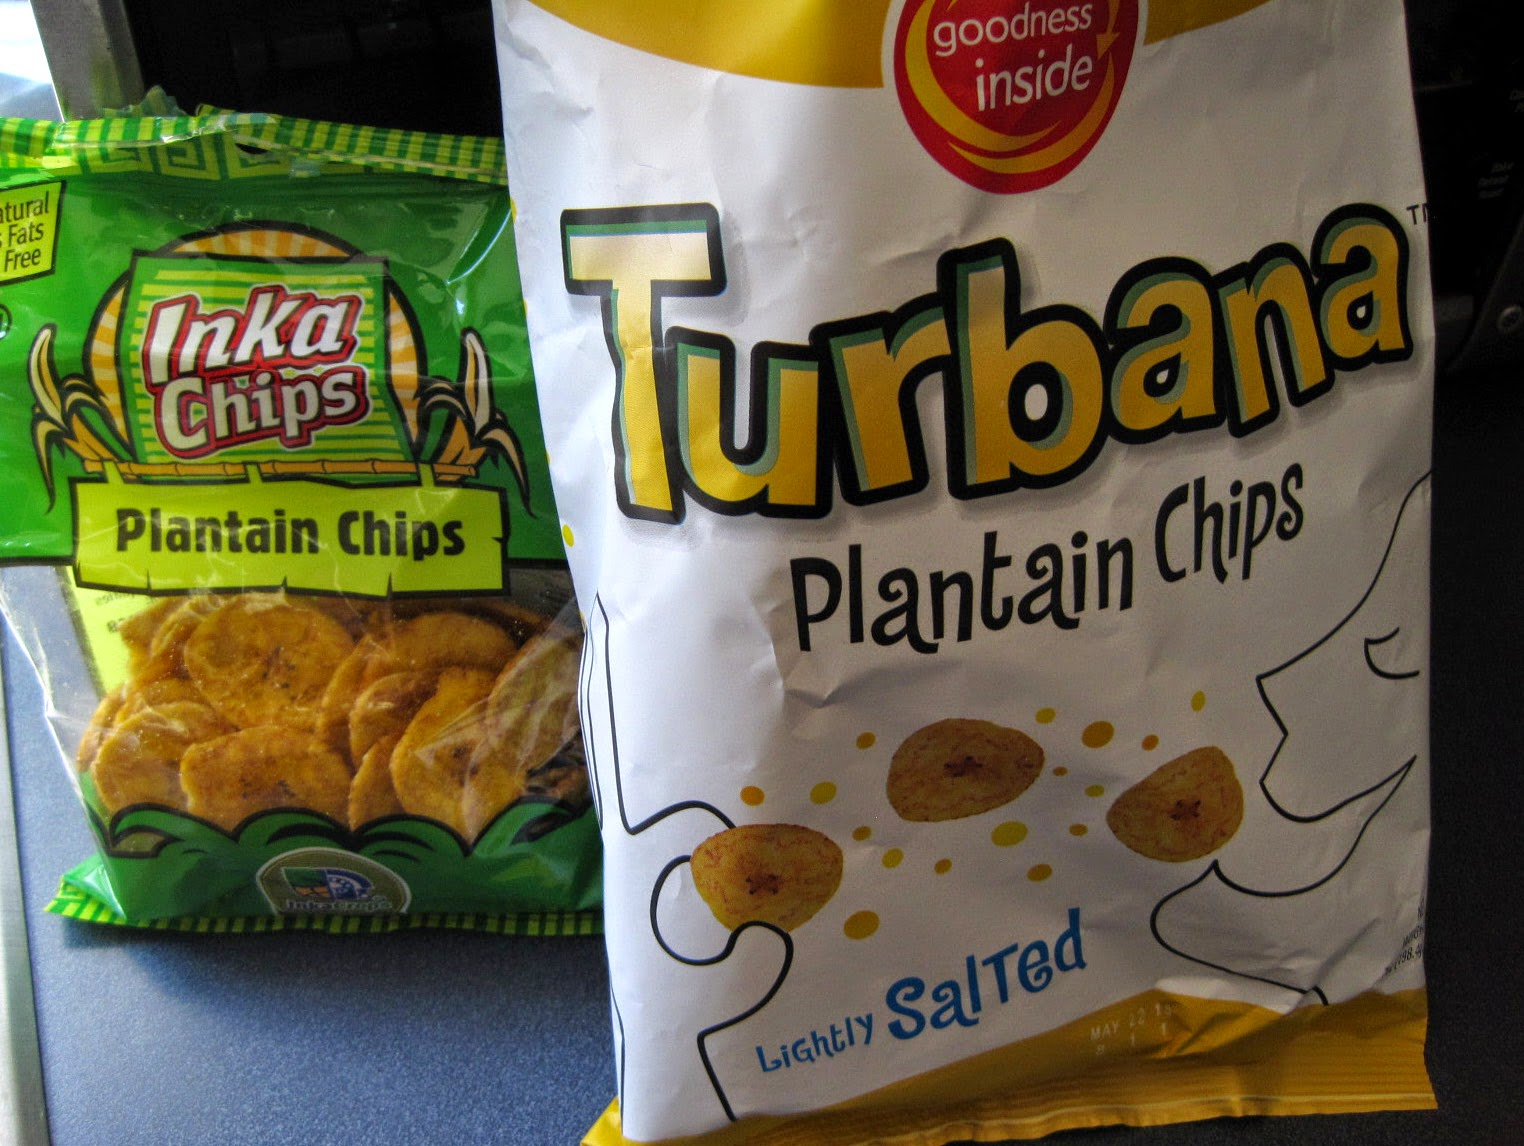 Inka Chips, Turbana Plantain Chips